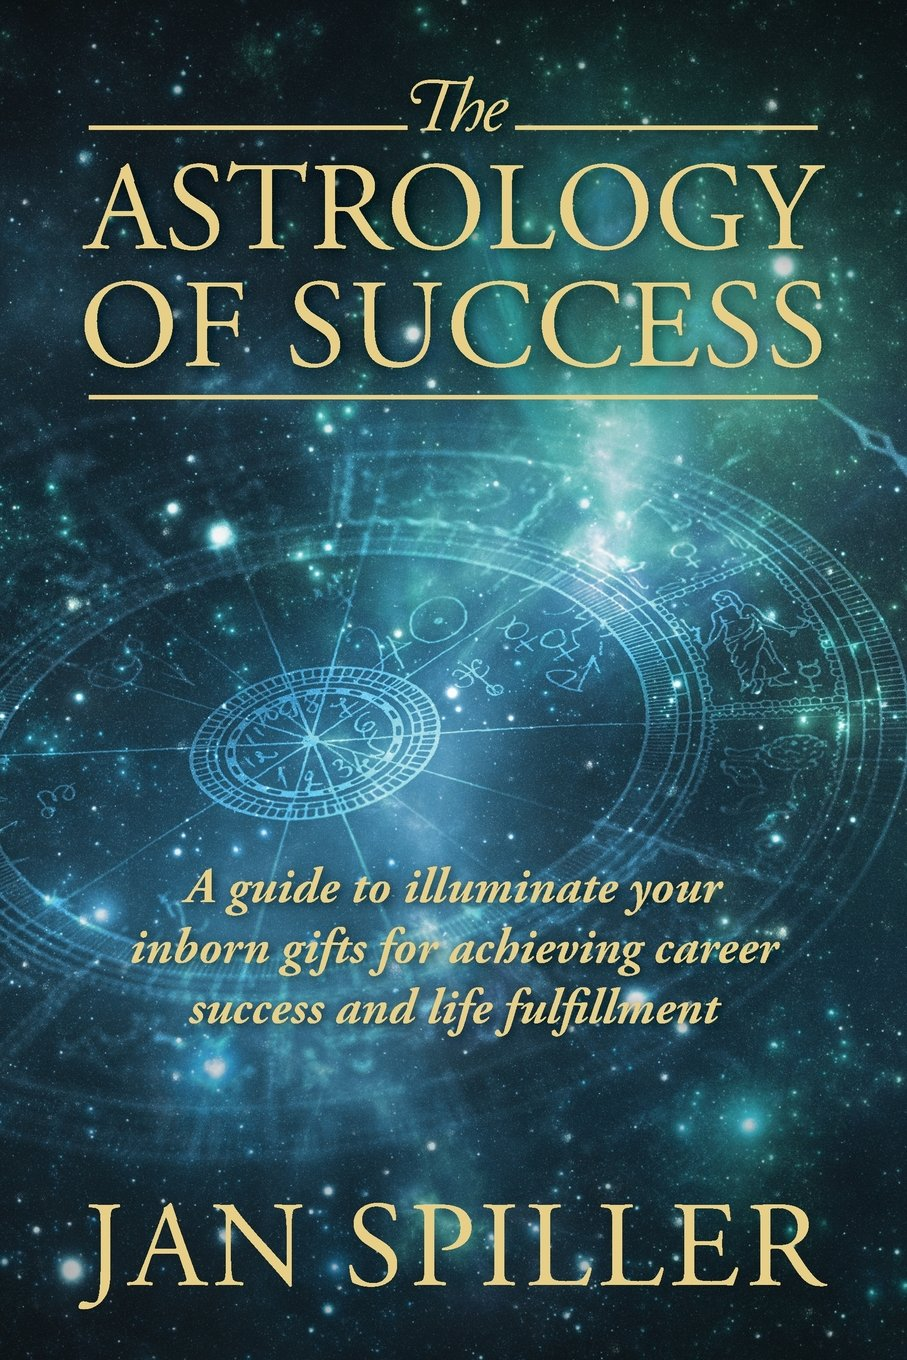 Astrology Success Illuminate Achieving Fulfillment product image